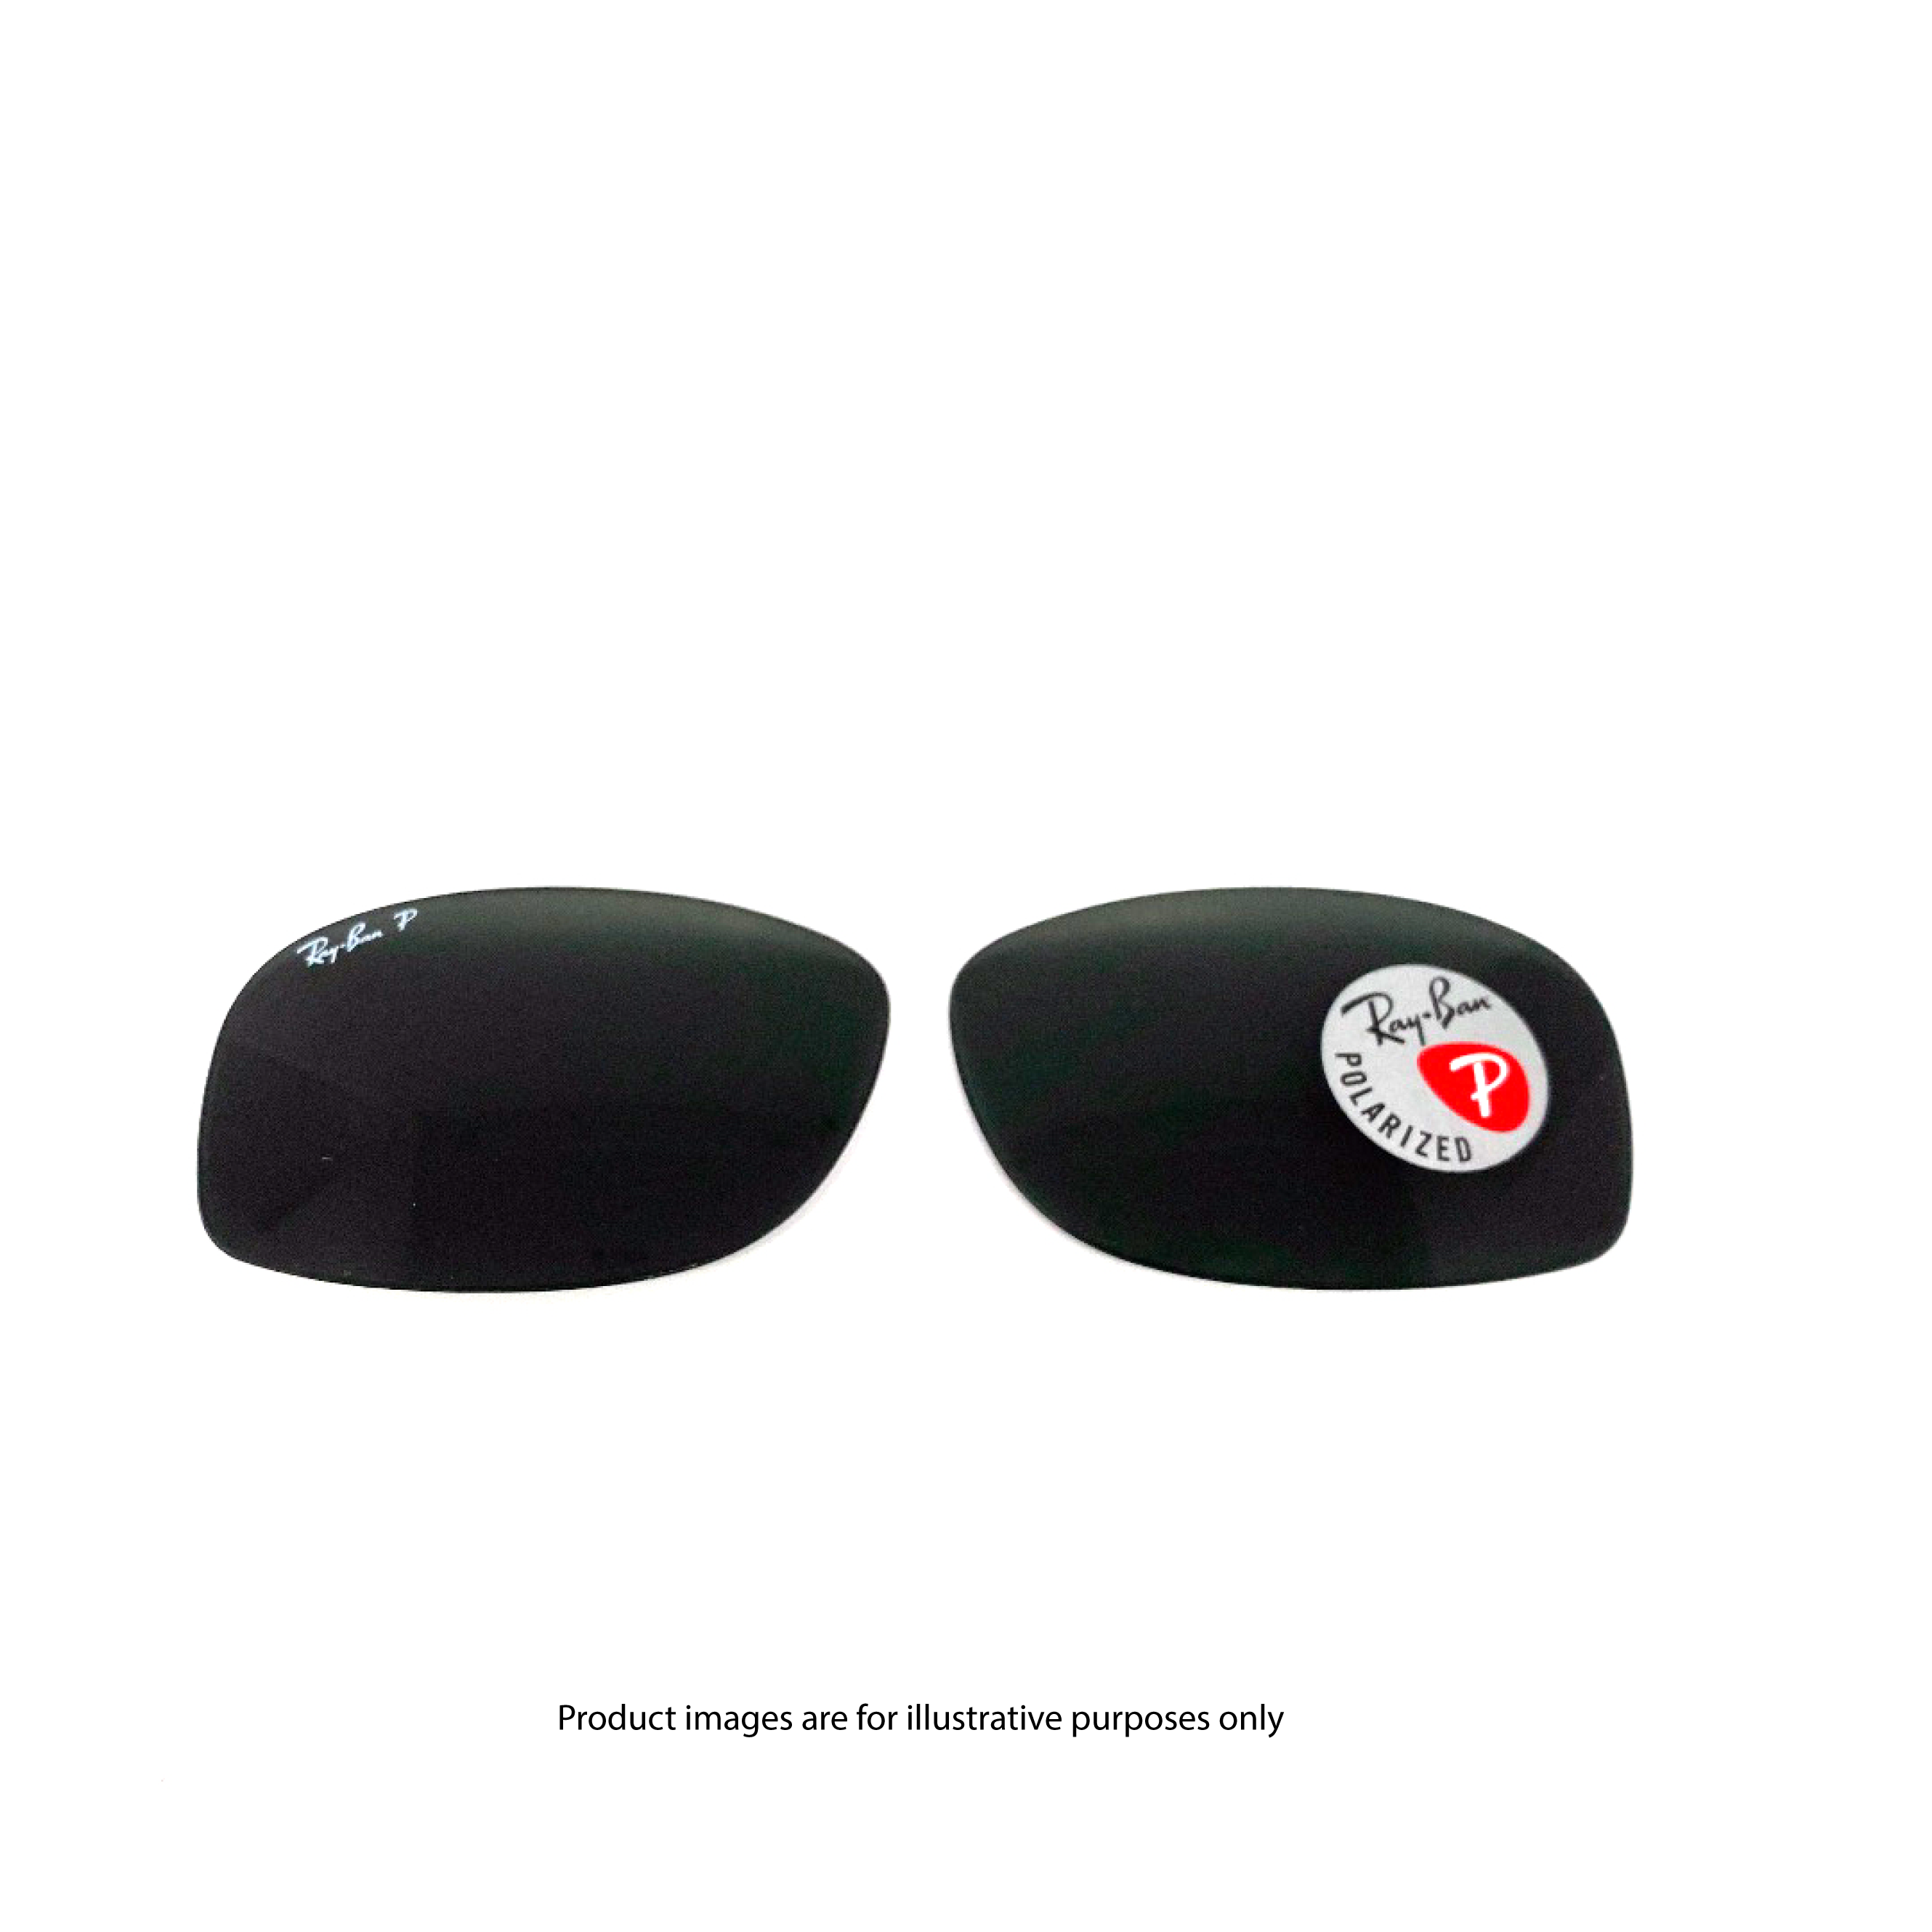 Ray Ban Replacement Lenses | Sunglasses UK | Free Delivery |